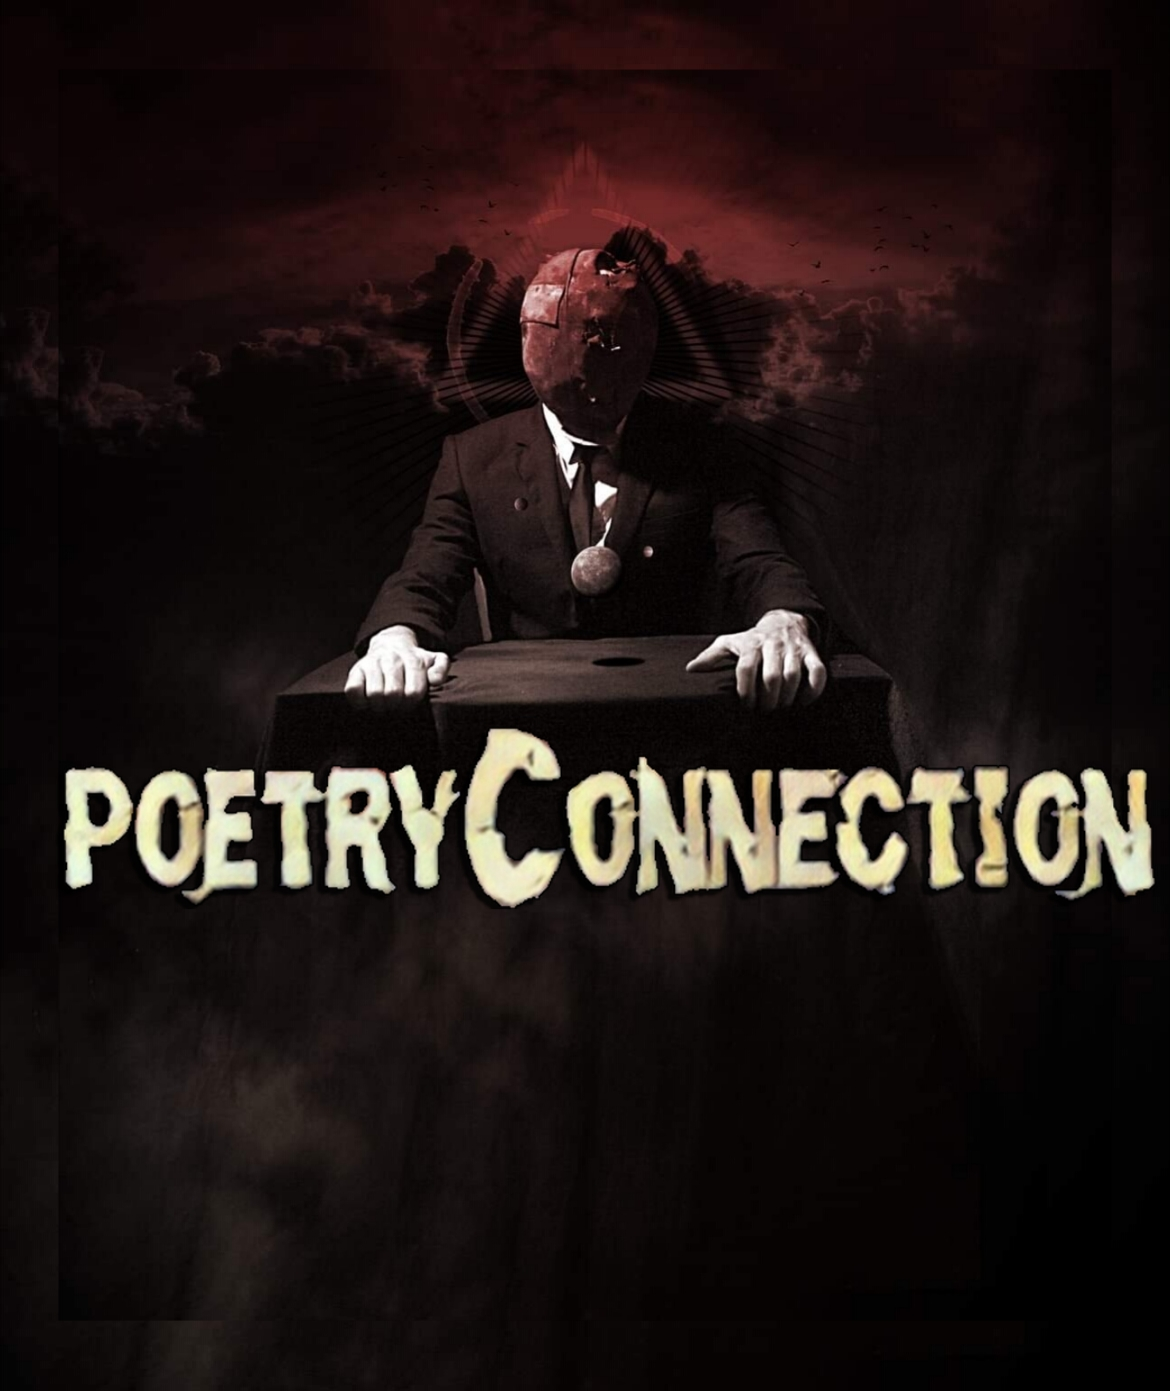 poetryConnection